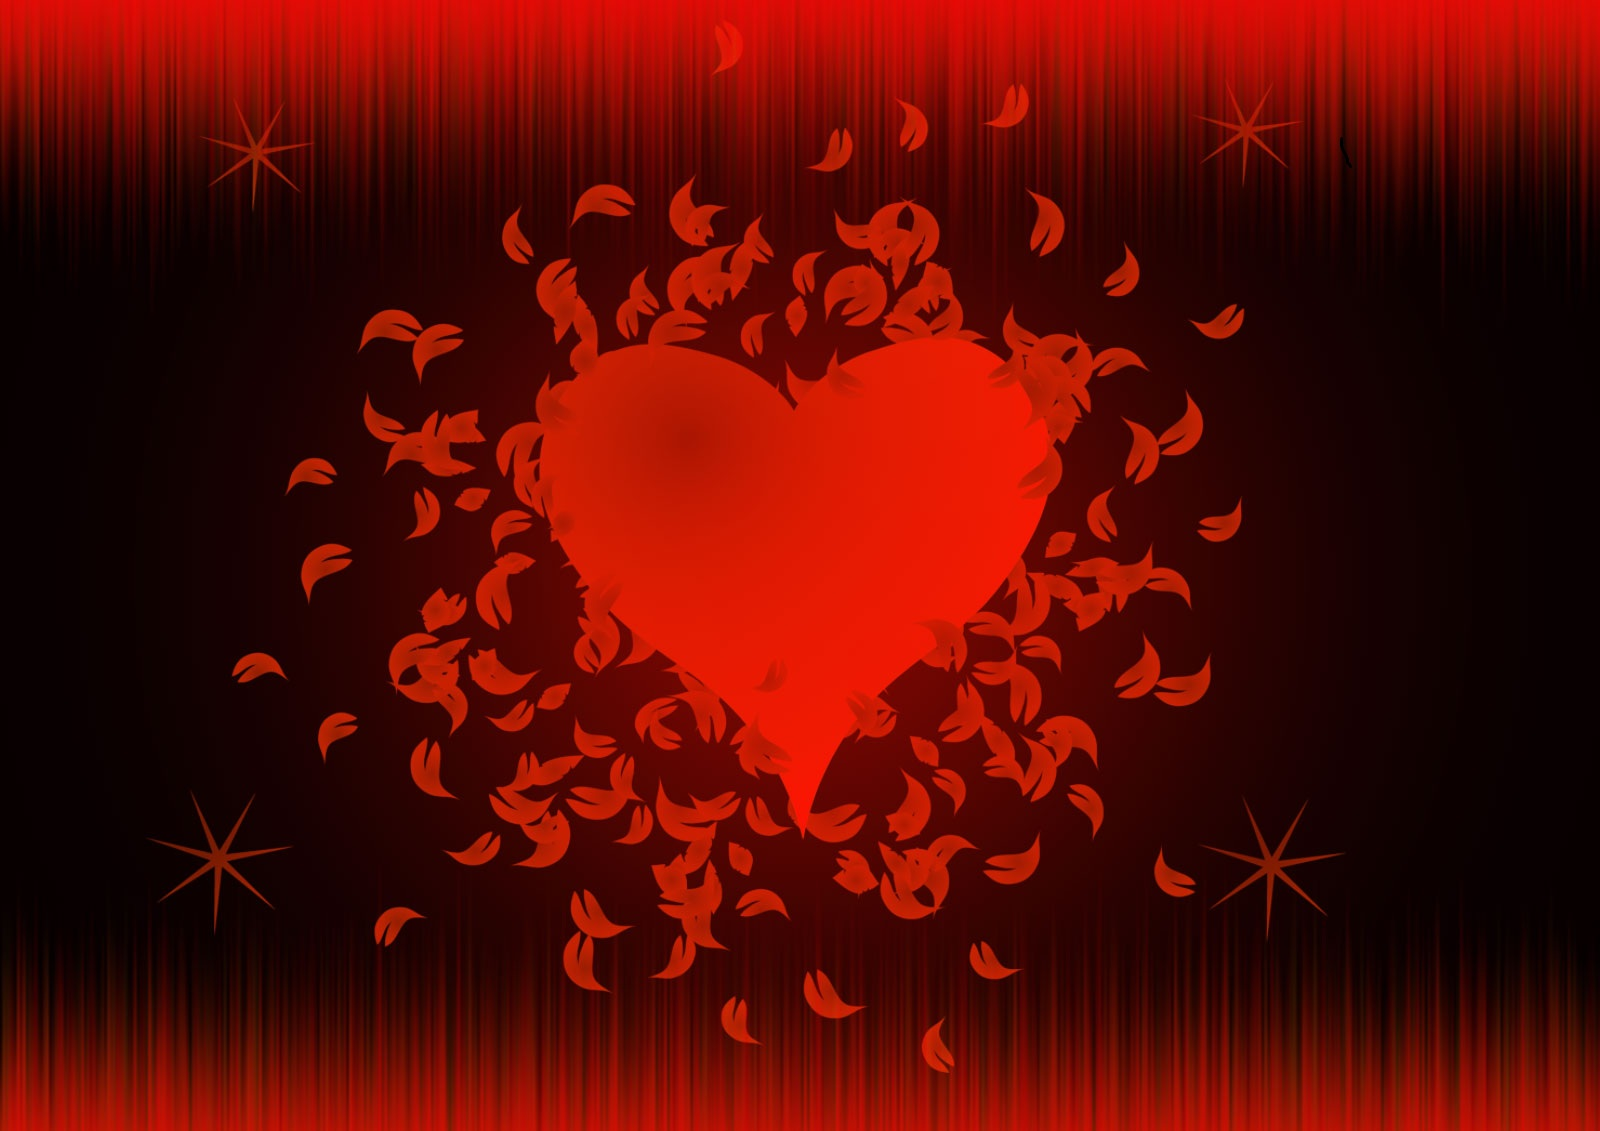 Animals zoo park valentines day backgrounds valentines - Valentines day background wallpaper ...